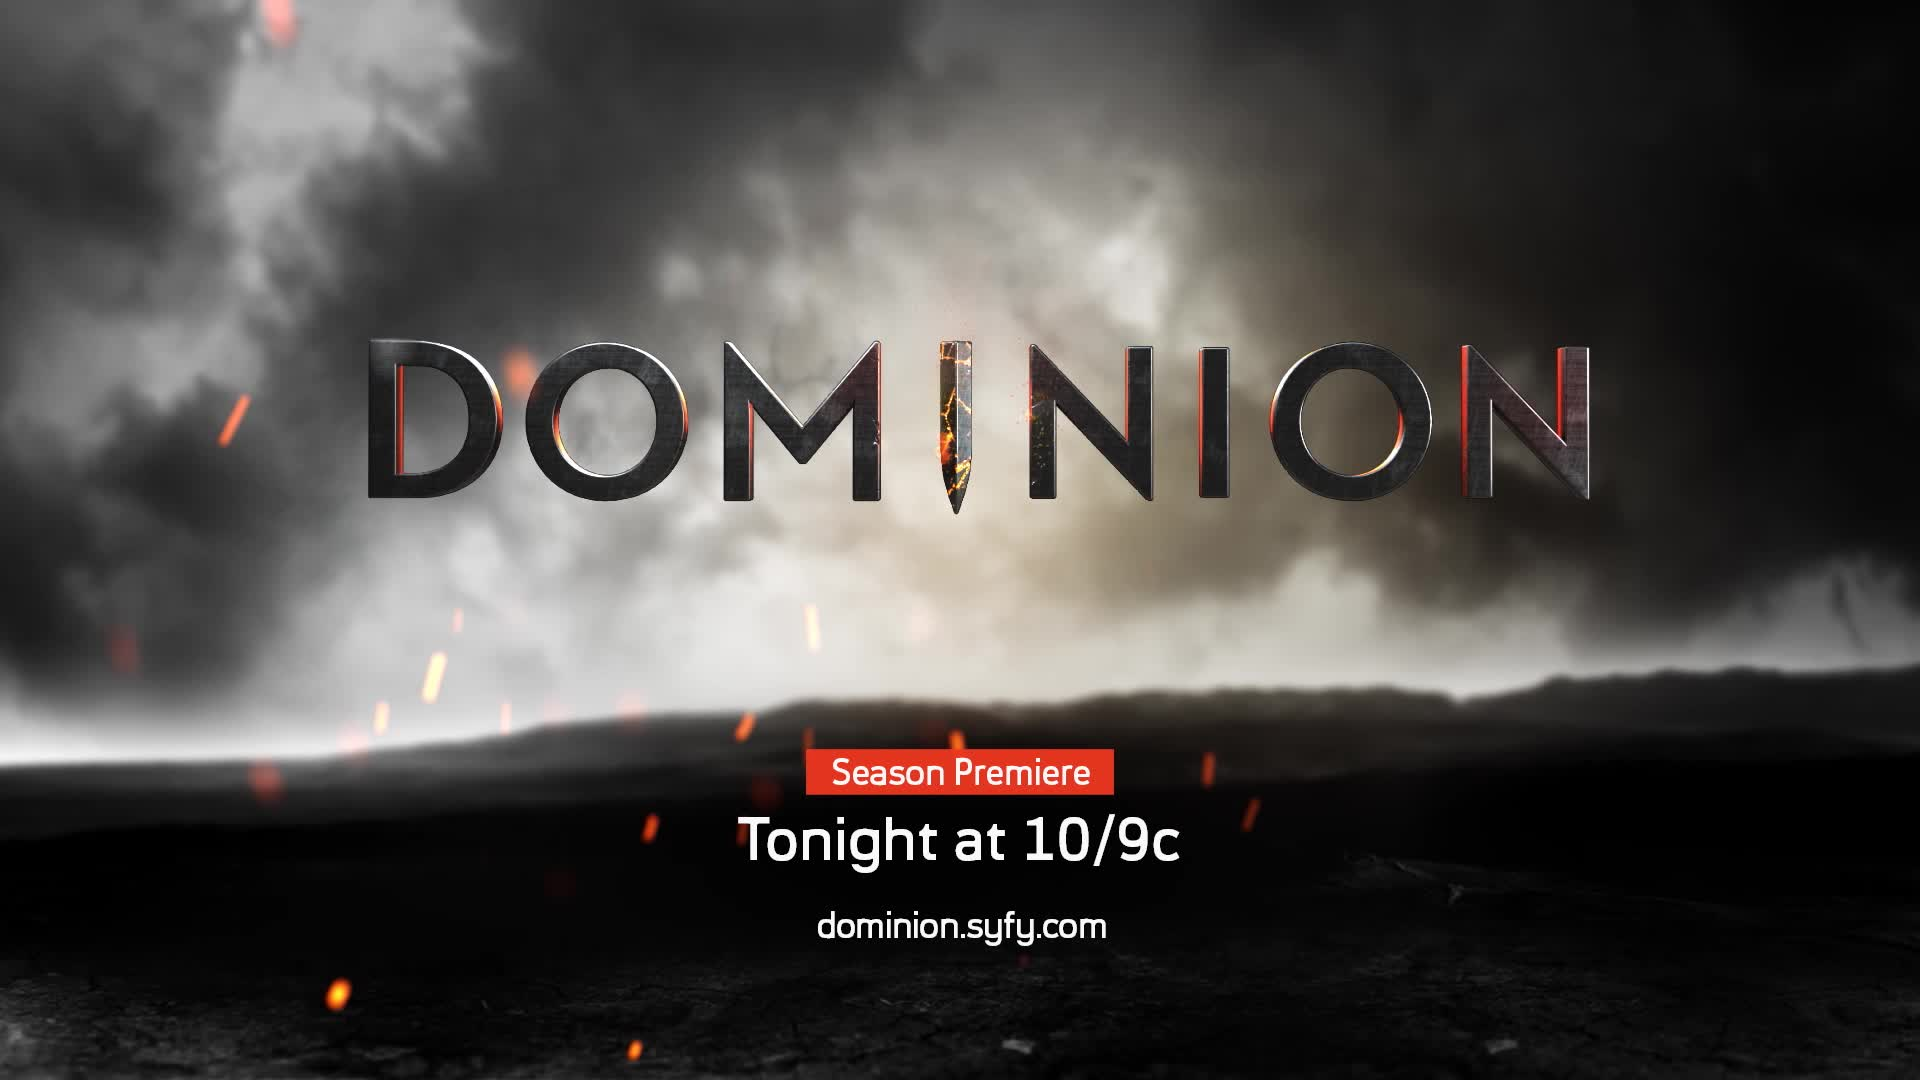 Dominion full movie hd download